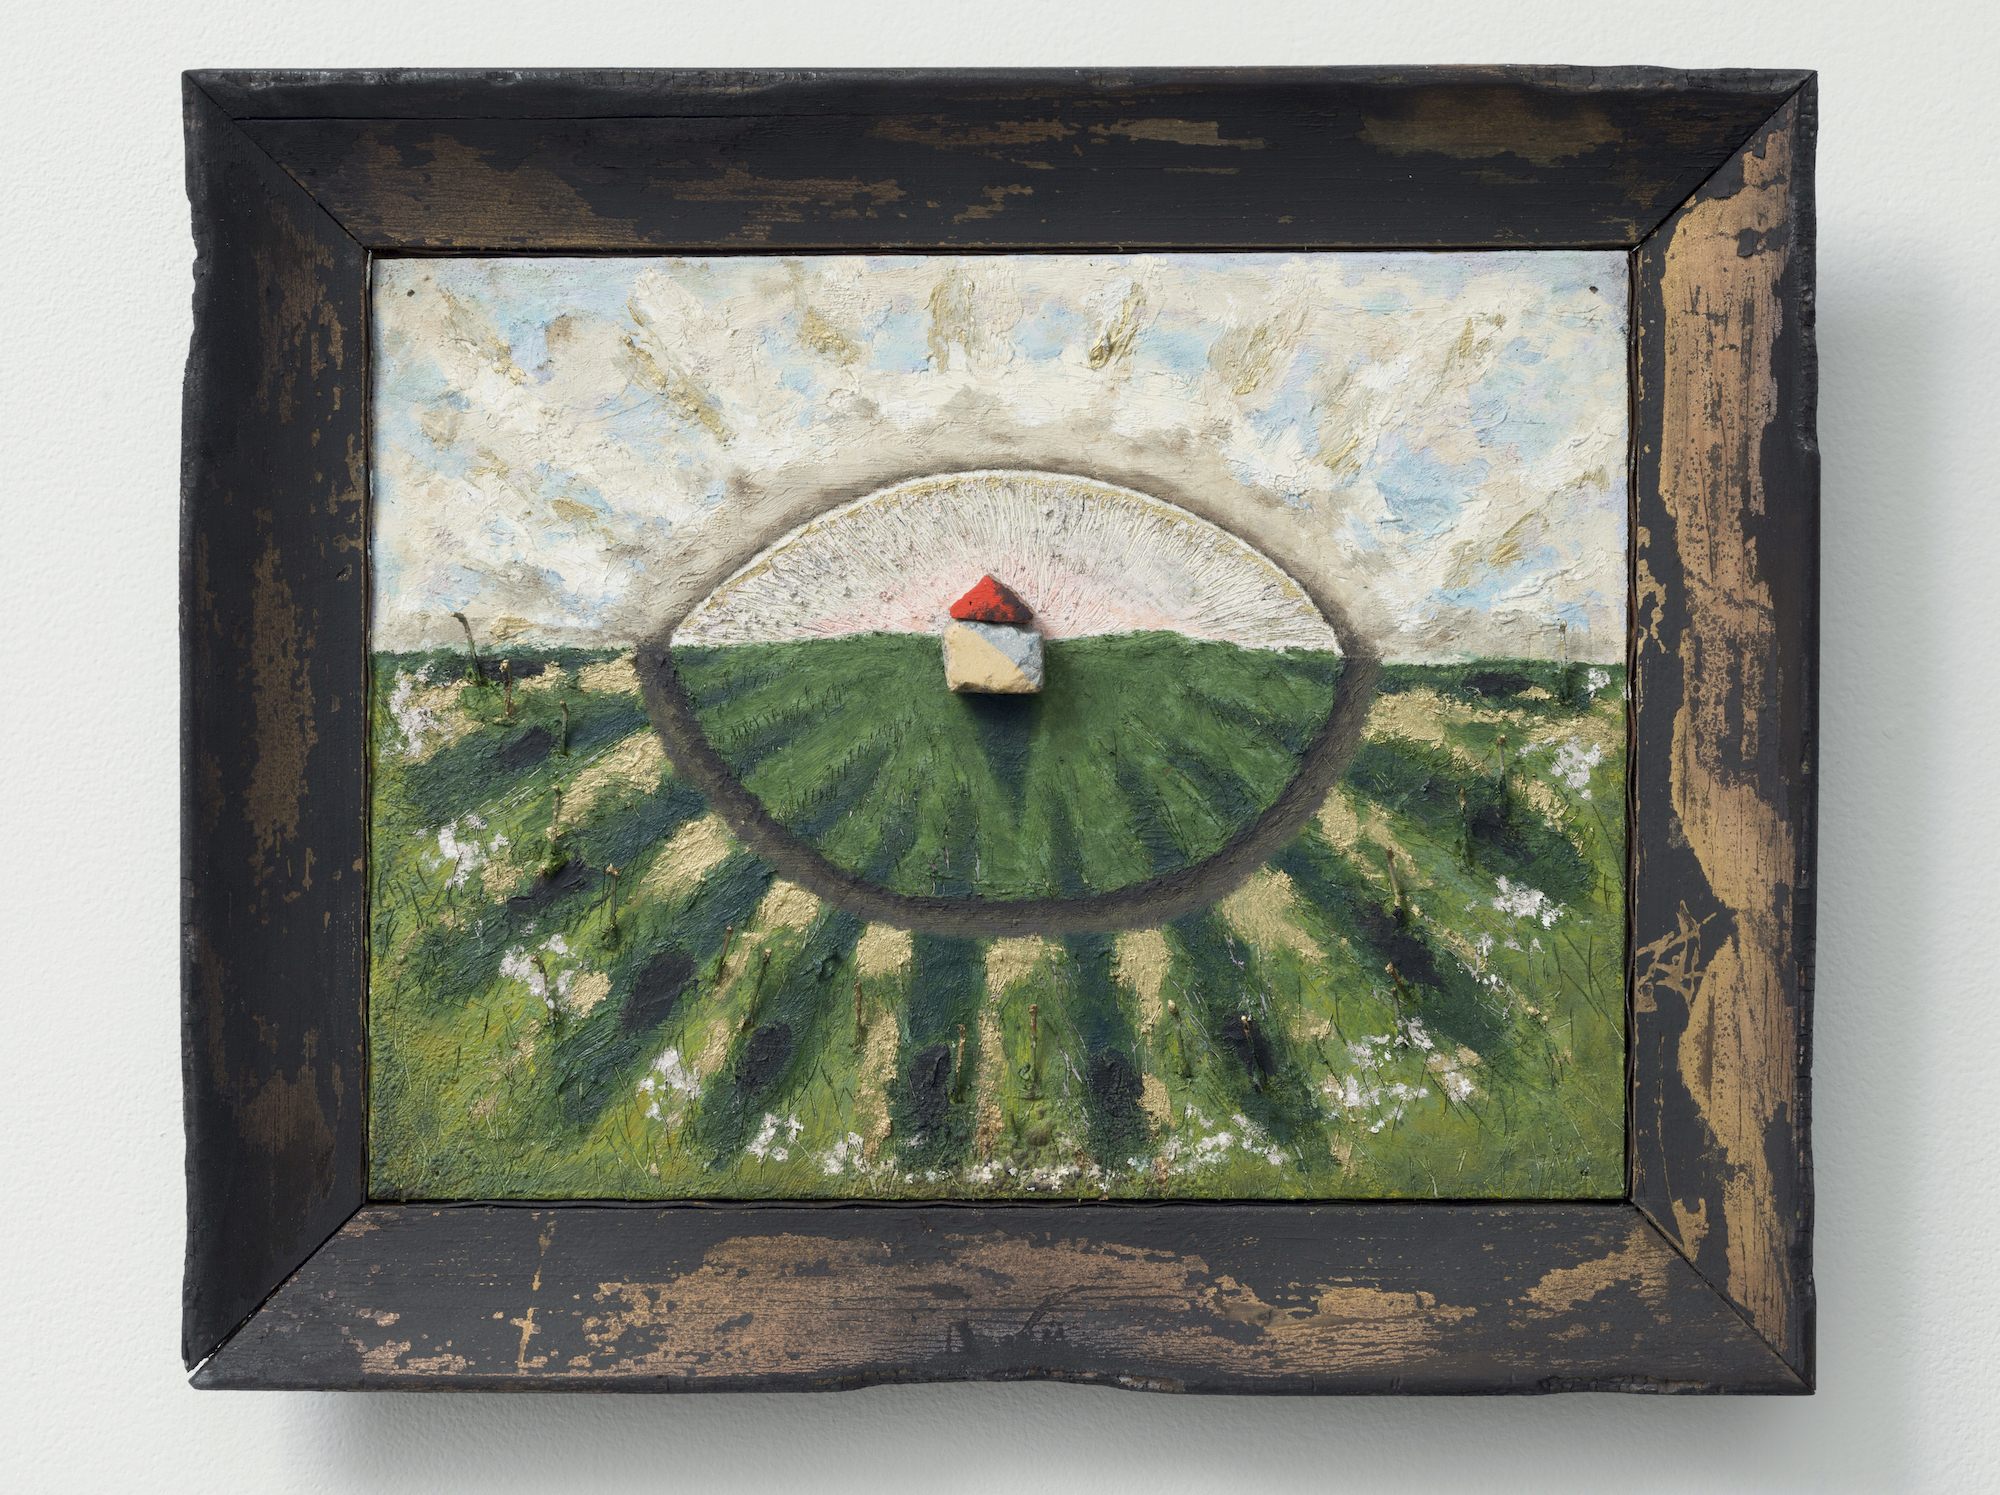 South St. Marys , 2015-16, oil, nails, wood, cement, metal and paper on panel with altered found frame, 14 by 17½ inches; at Western Exhibitions.